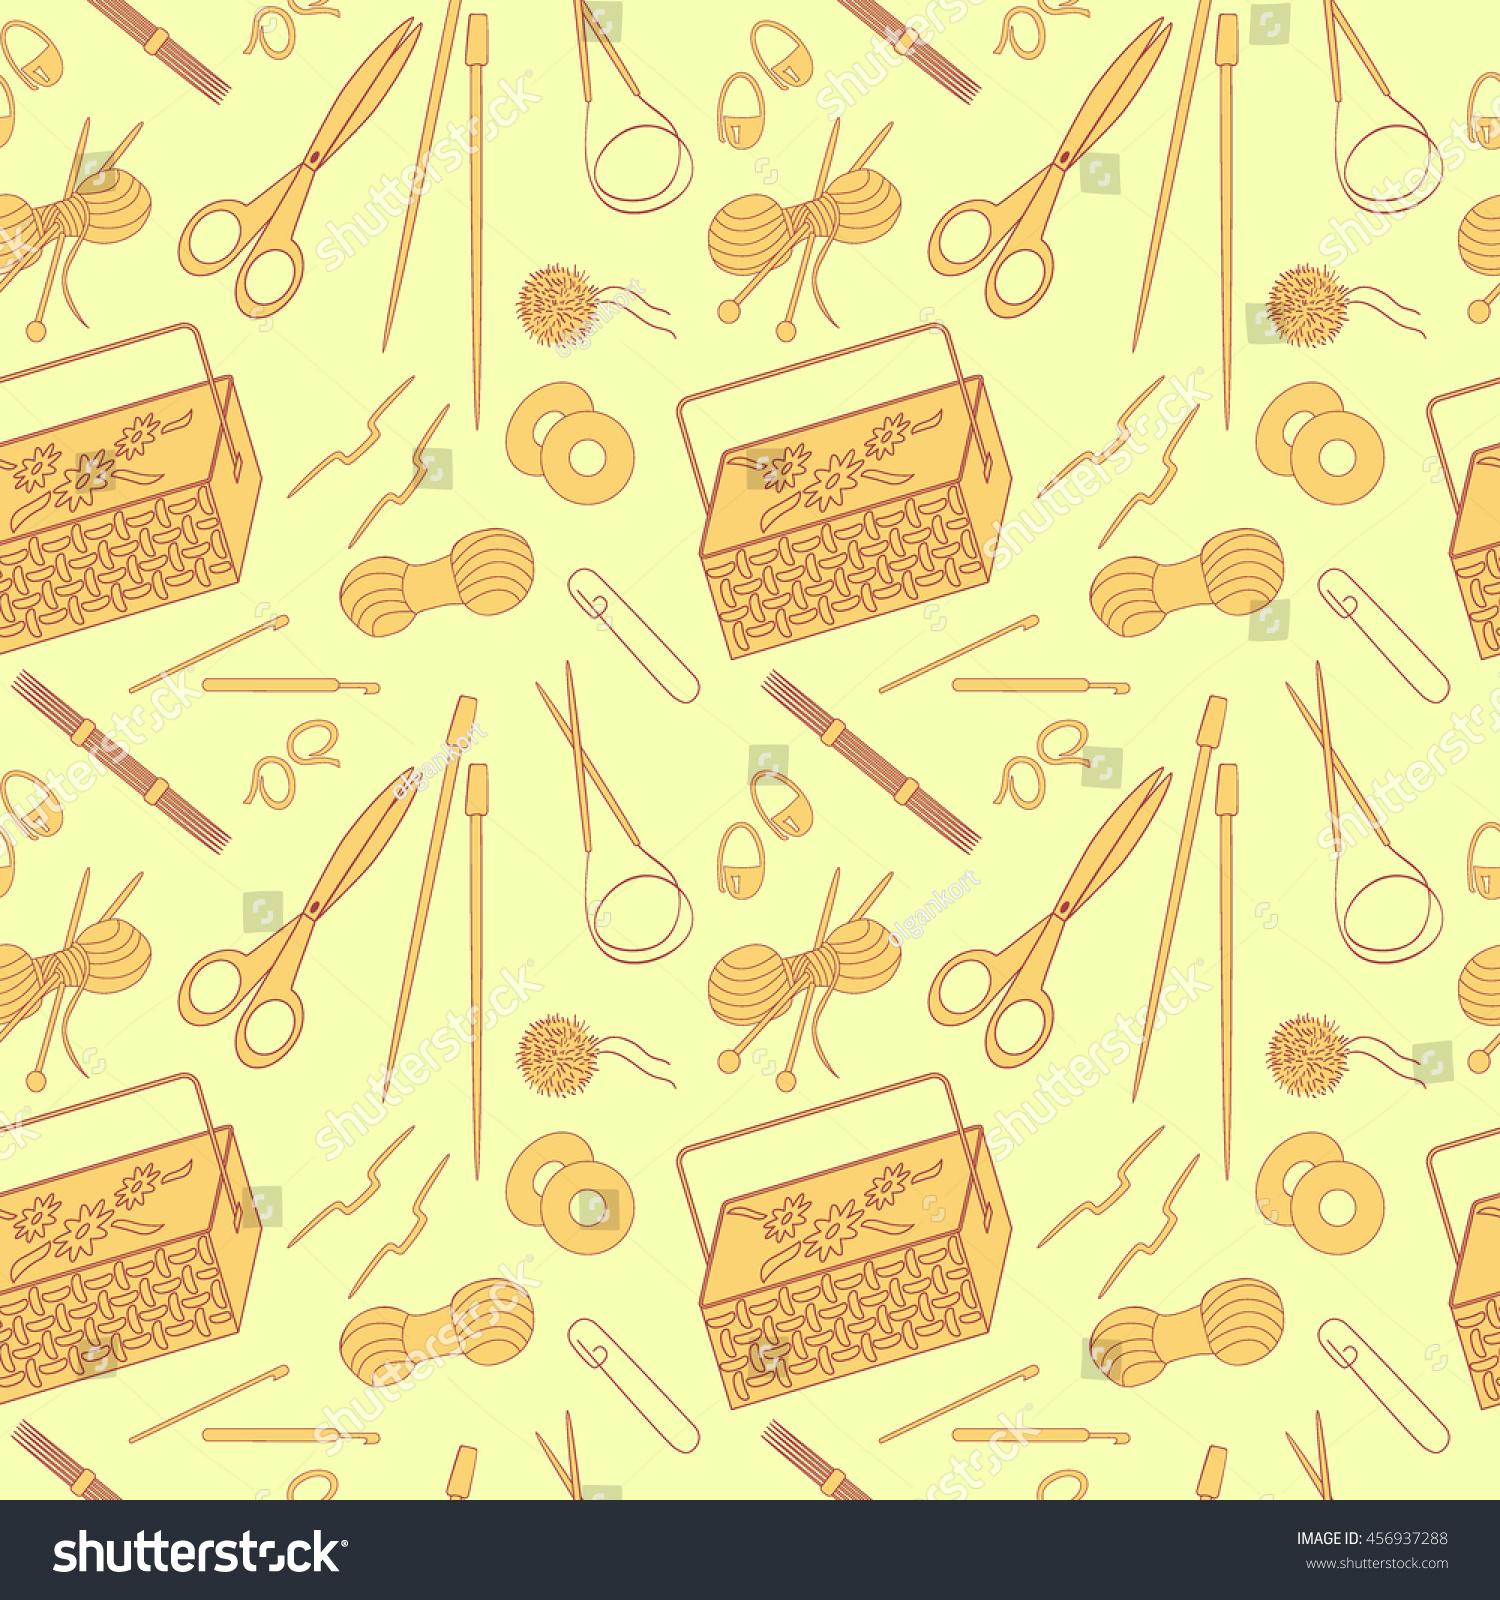 Seamless Pattern Knitting Crafts Icons Knitting Stock Vector ...